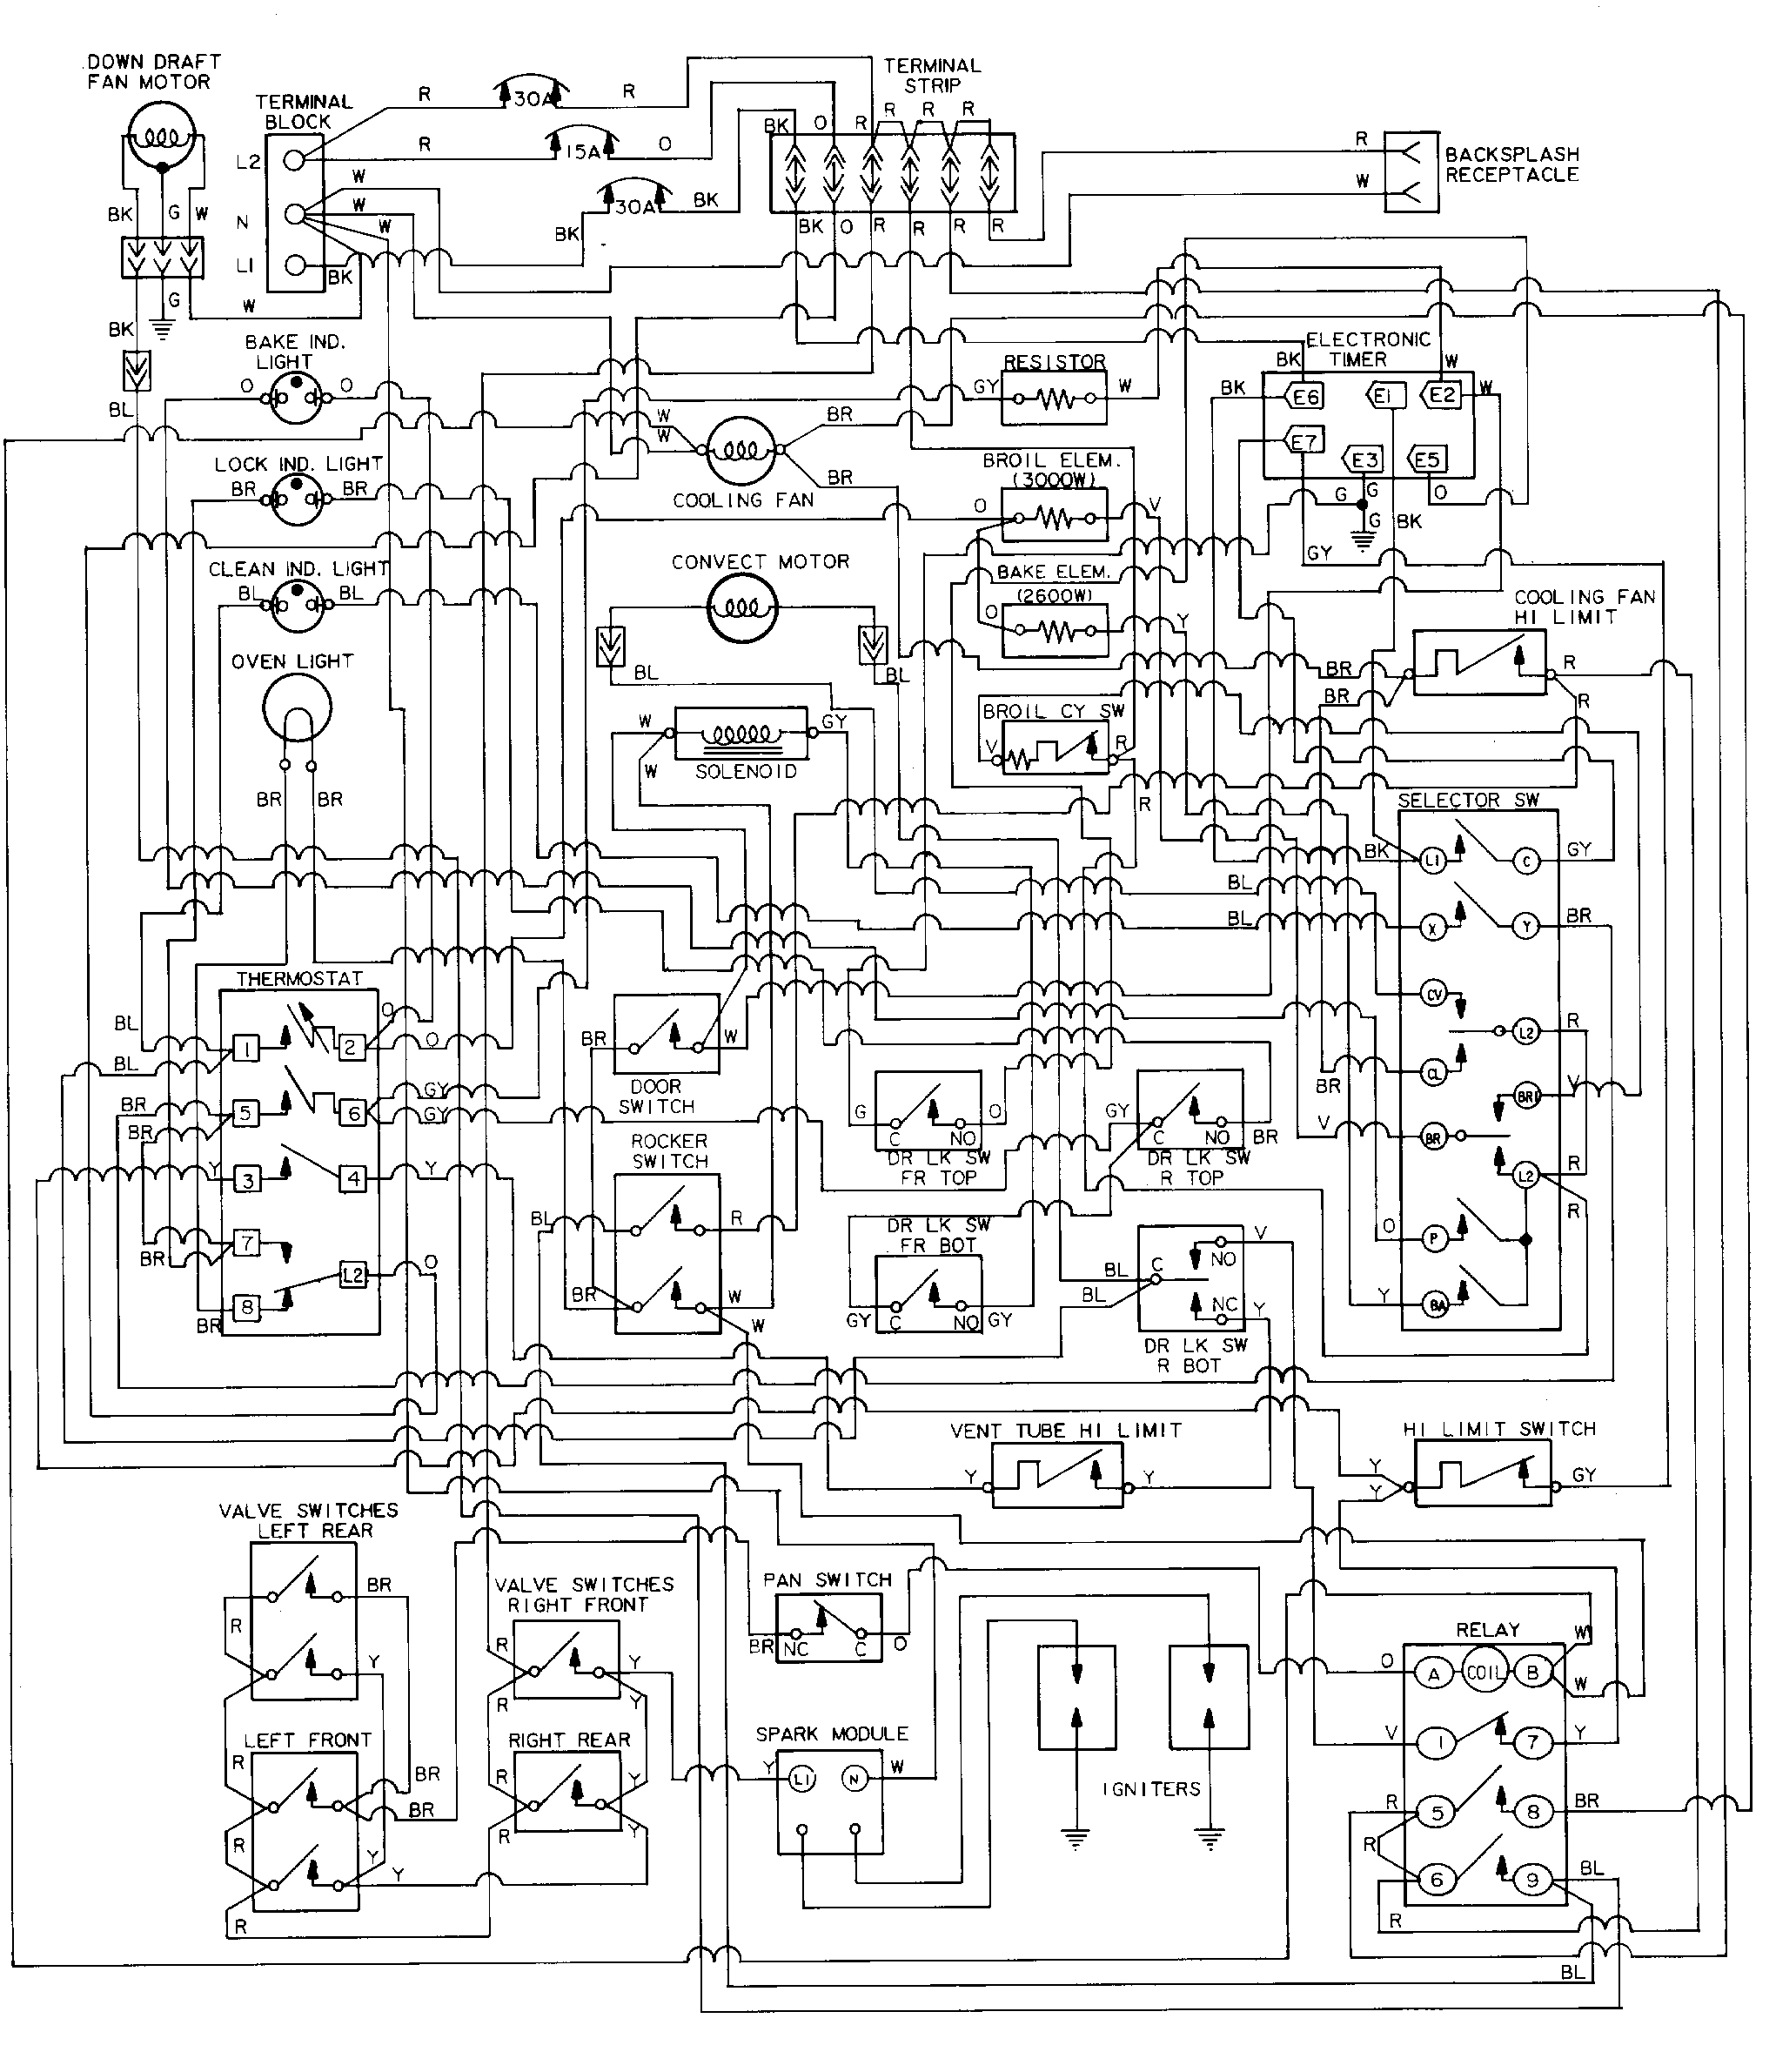 Att Wiring Diagram 18 Images Diagrams Router M0410001 00013resize6652c775